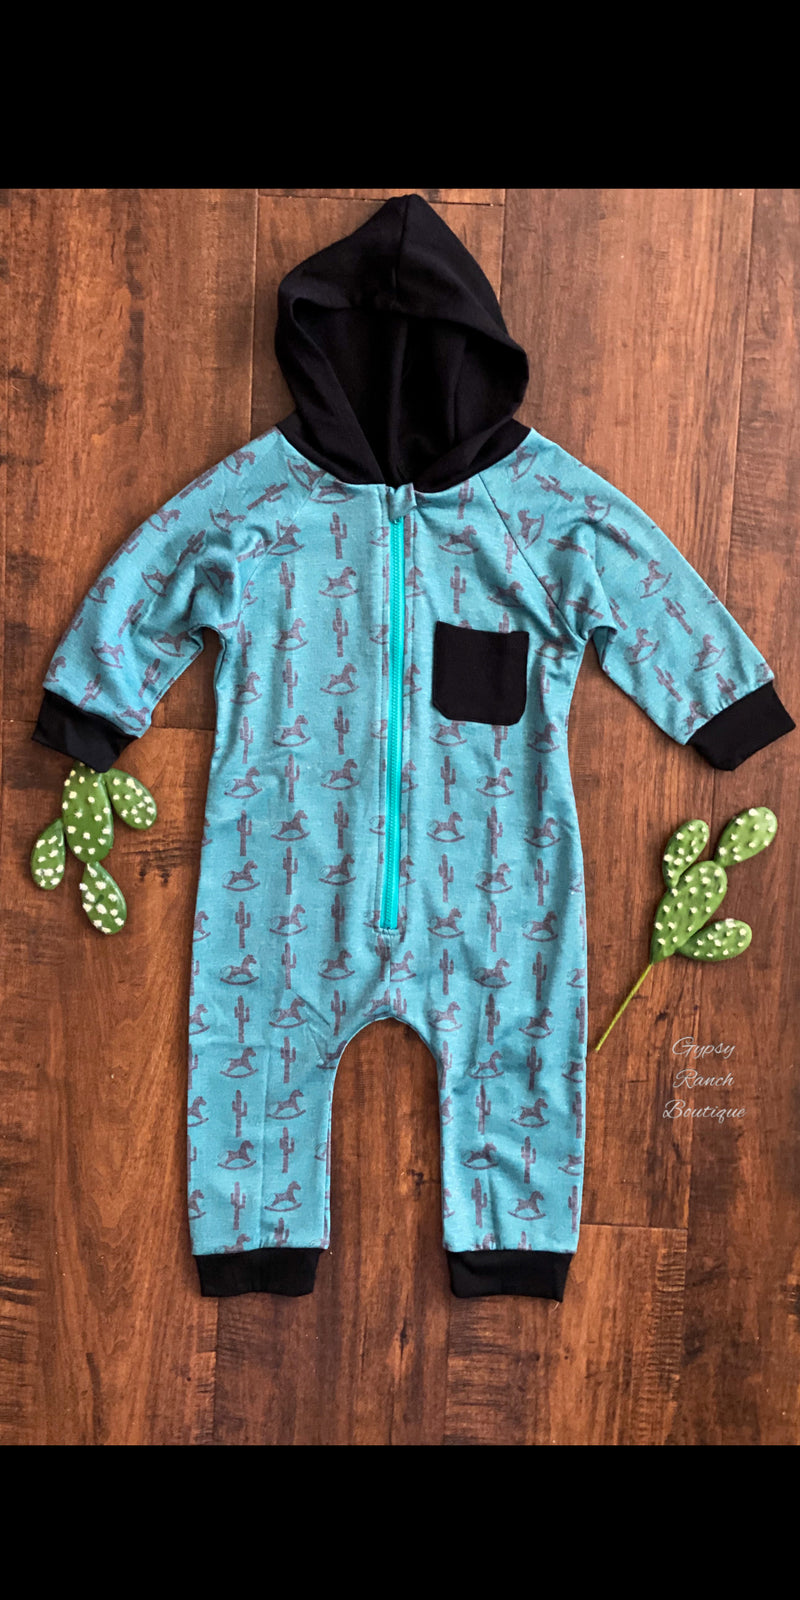 Baby Stir Up Trouble Zip Hoodsie Onesie